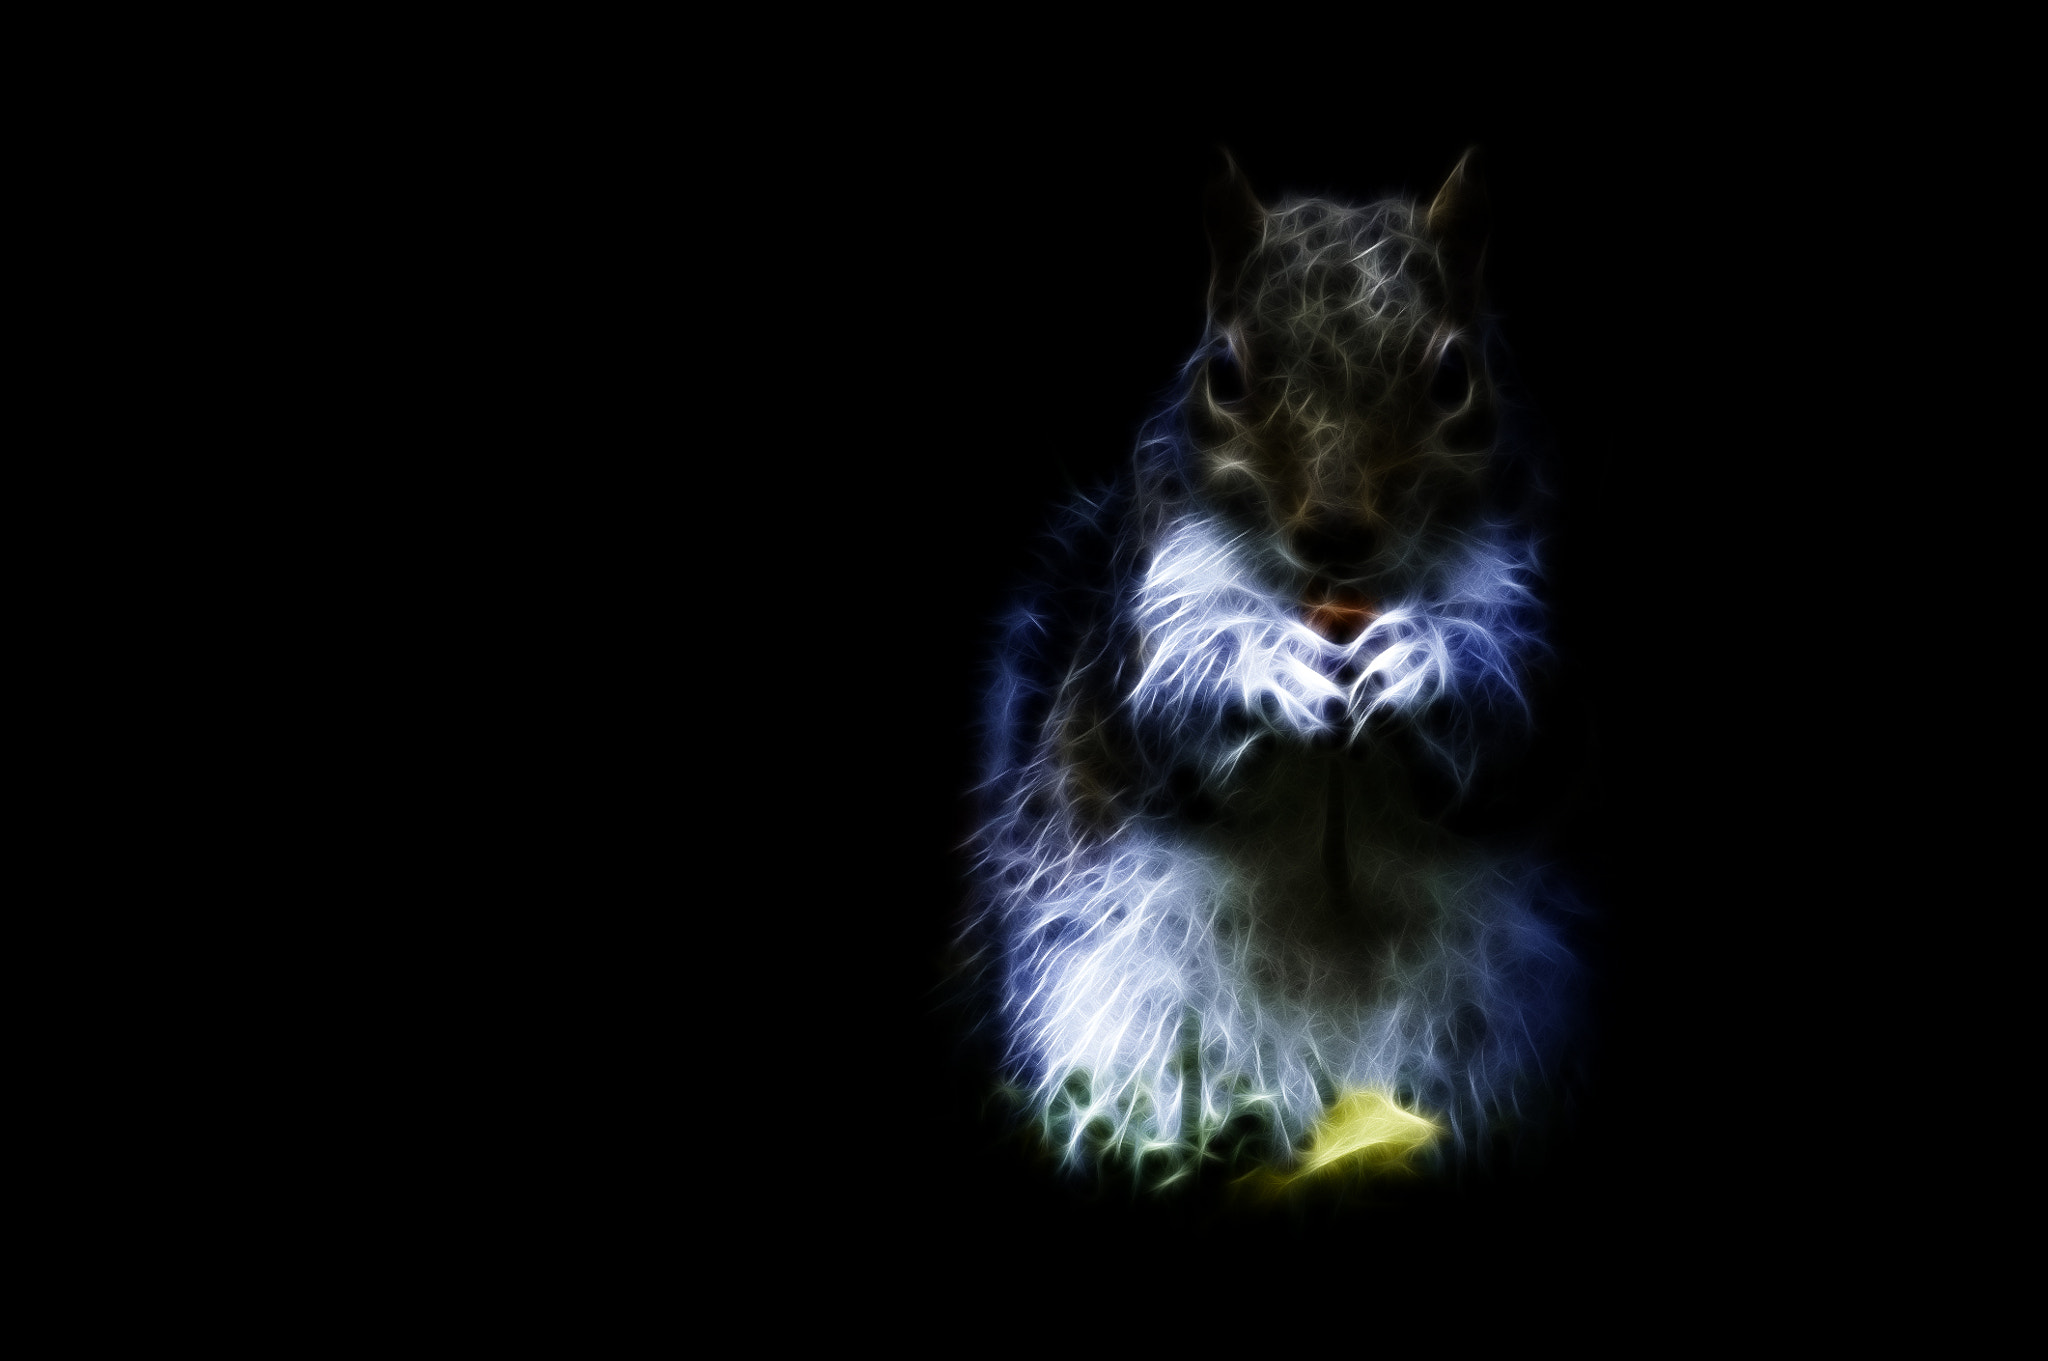 Photograph Tufty the Squirrel by Tony Haddow on 500px